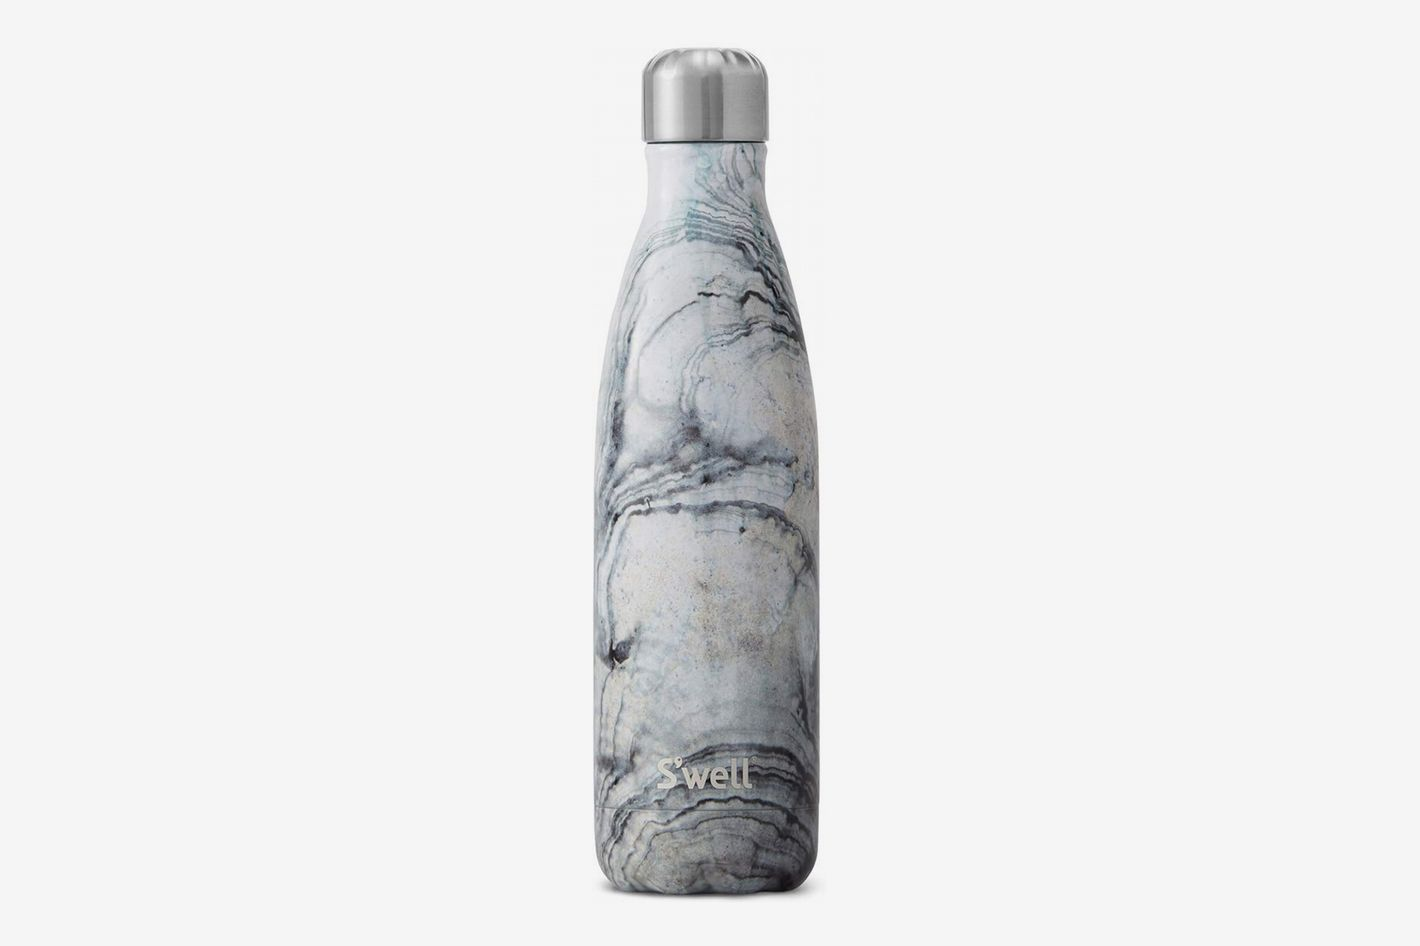 635f5ea1f8f S well Vacuum Insulated Stainless Steel Water Bottle